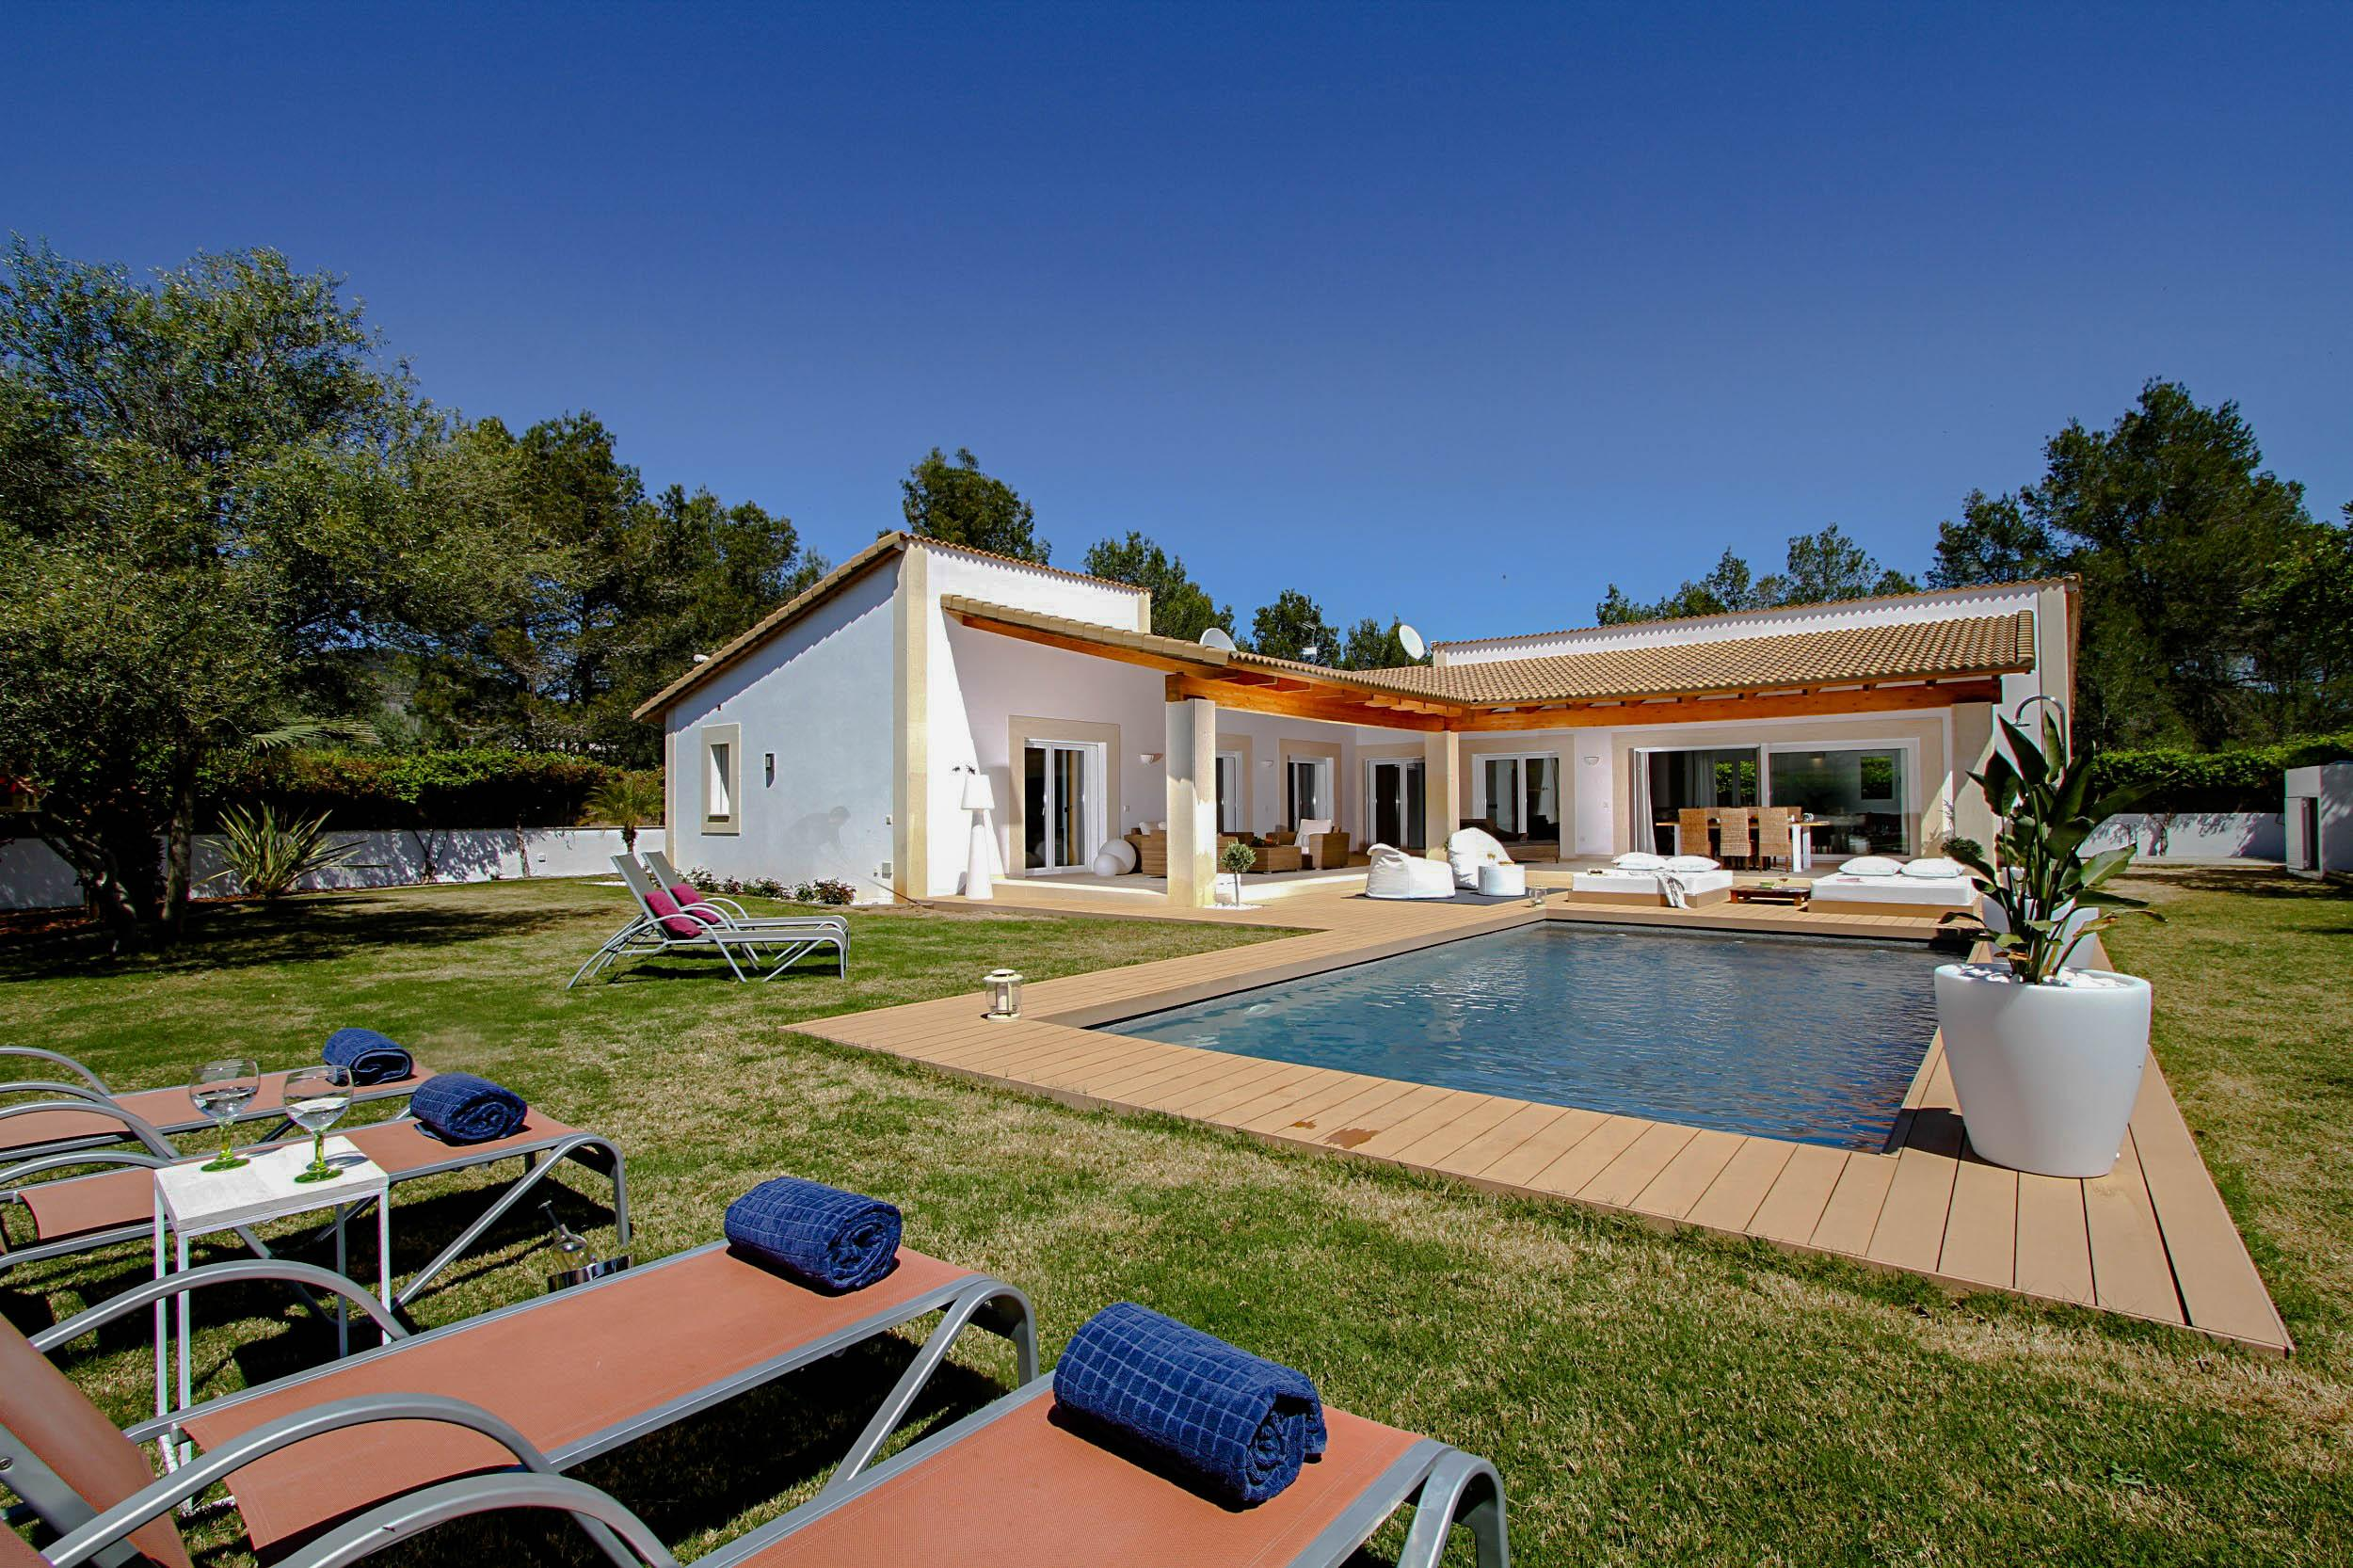 Property Image 1 - Tranquil Open Air Villa with Luxury Style Comfort Throughout and Private Pool